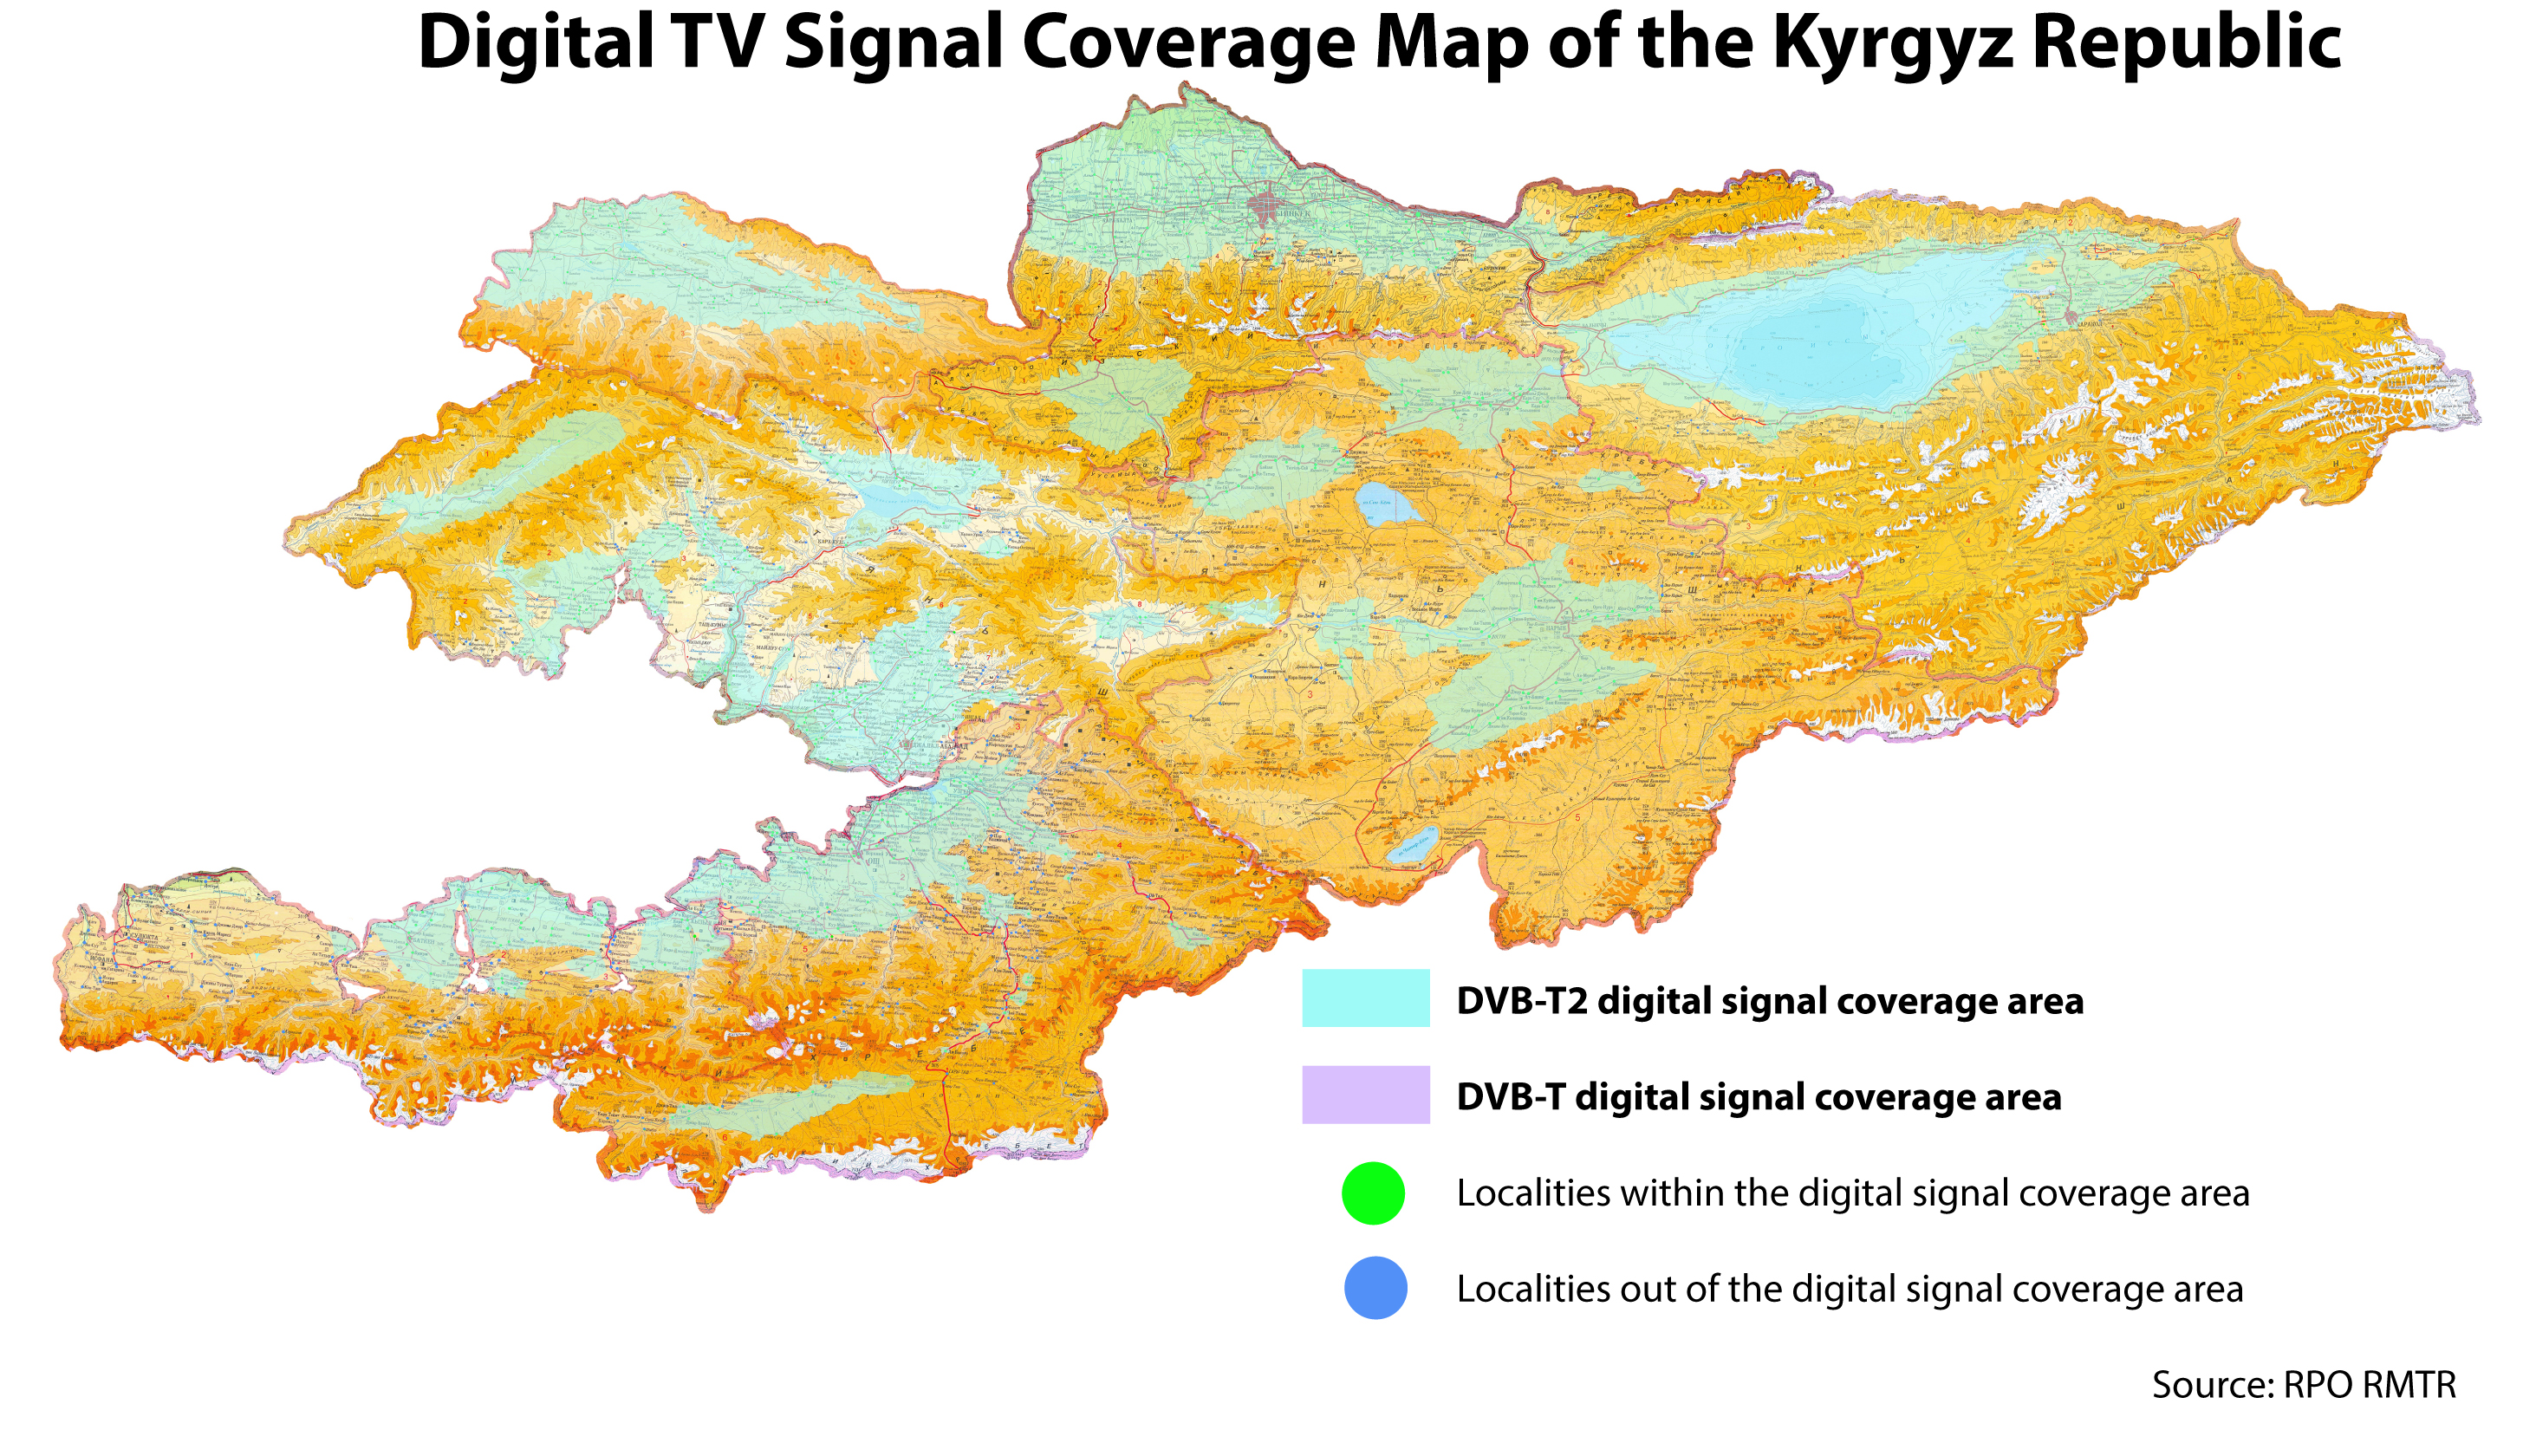 Kyrgyzstan switches tv broadcasting to digital format mediasat english communications agency kyrgyztelecom and the republican production association of radio relay backbones of television and radio broadcasting rpo rmtr gumiabroncs